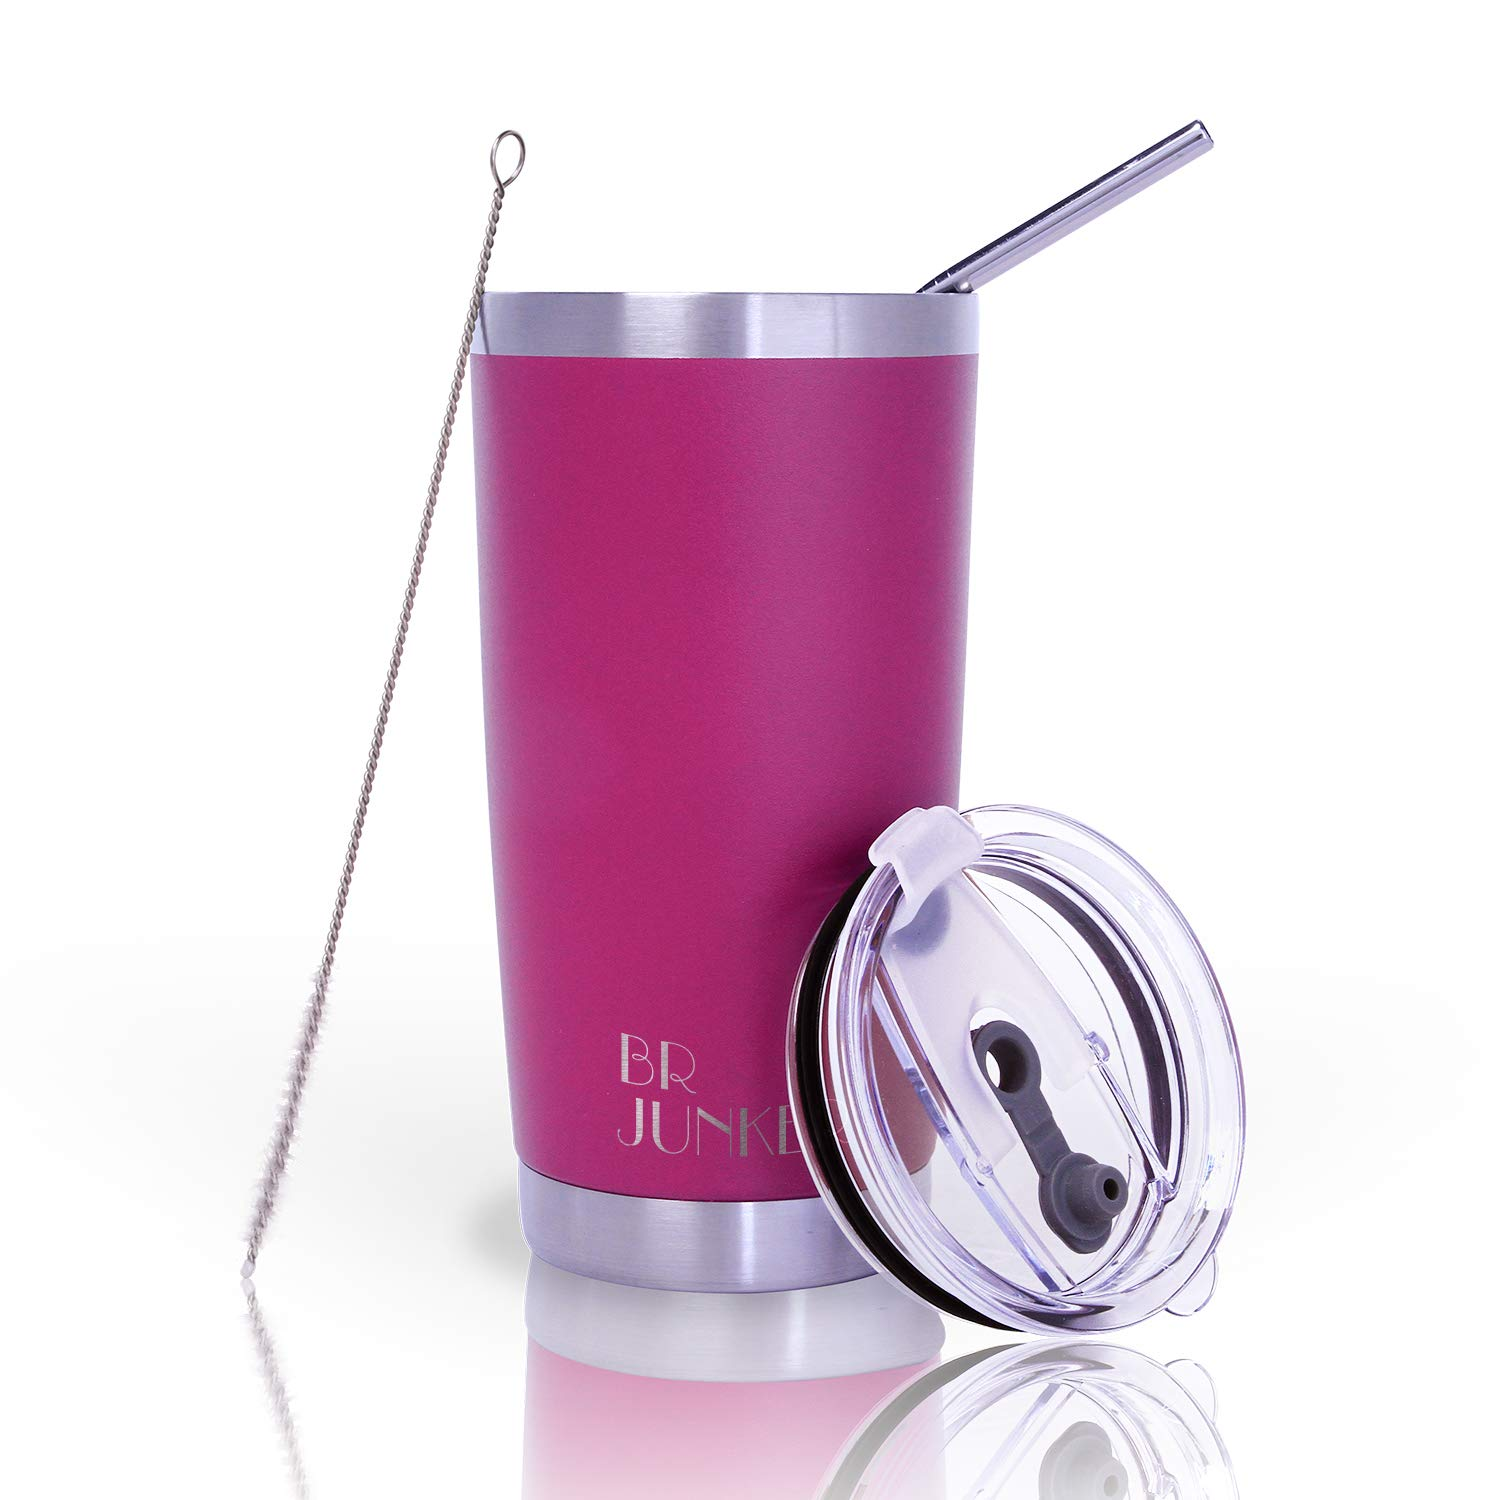 20 oz. Tumbler Double Wall Stainless Steel Vacuum Insulation Travel Mug with Crystal Clear Lid and Straw, Water Coffee Cup for Home,Office,School, Ice Drink, Hot Beverage,Fuchsia